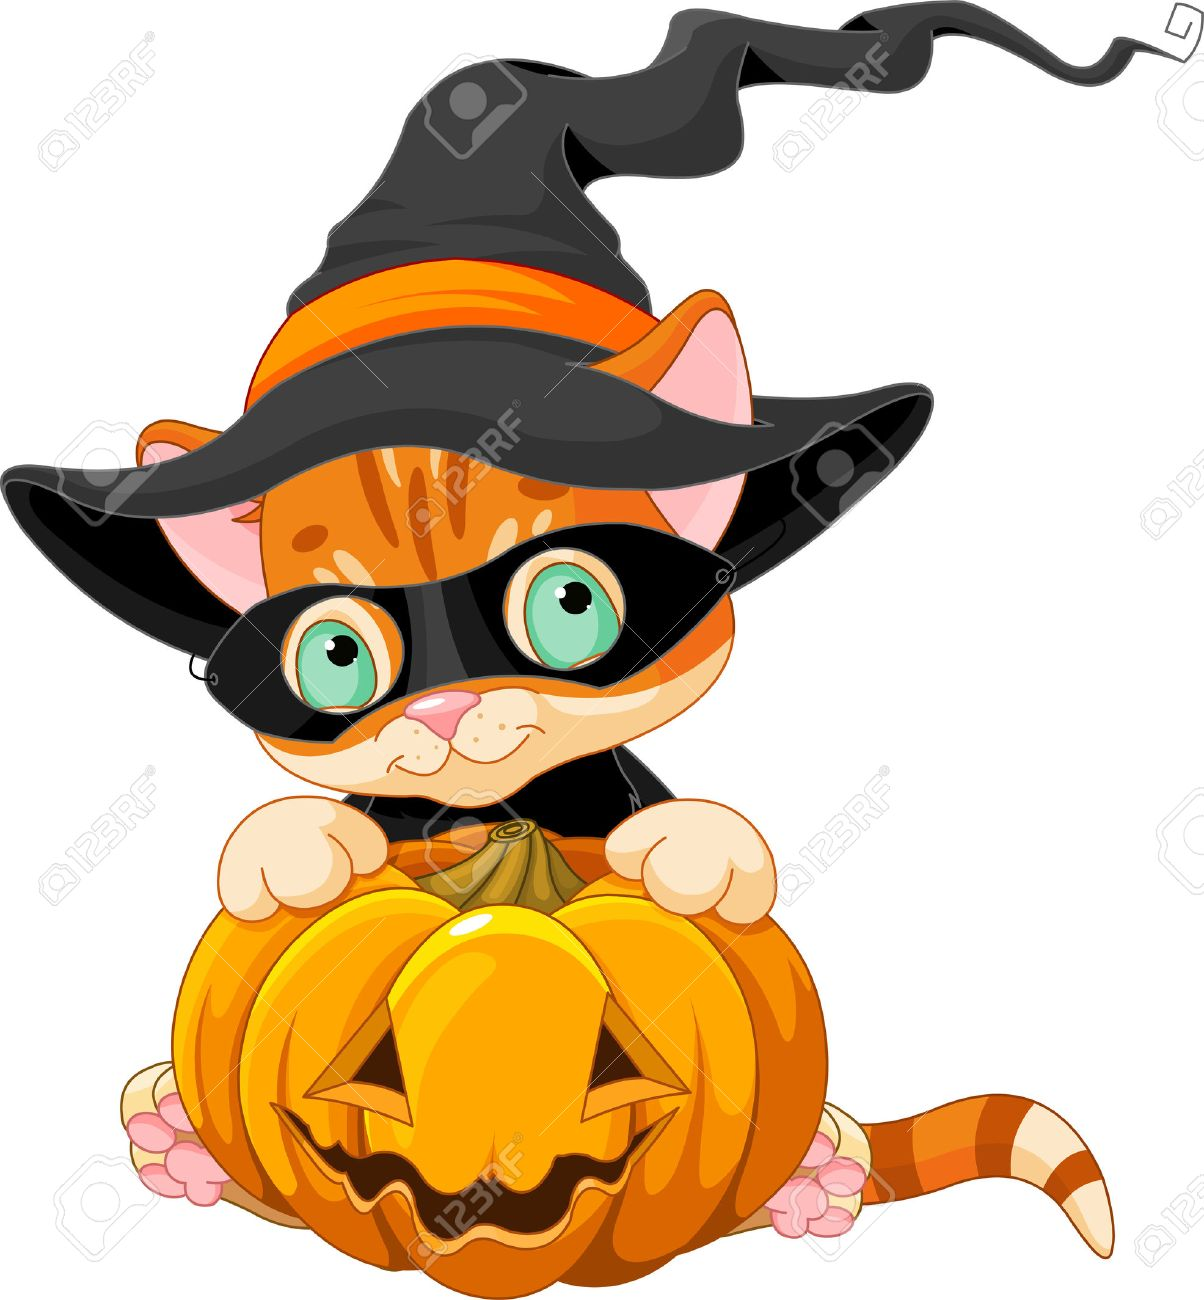 17 978 halloween cat stock illustrations cliparts and royalty free rh 123rf com happy halloween cat clipart cute halloween cat clipart